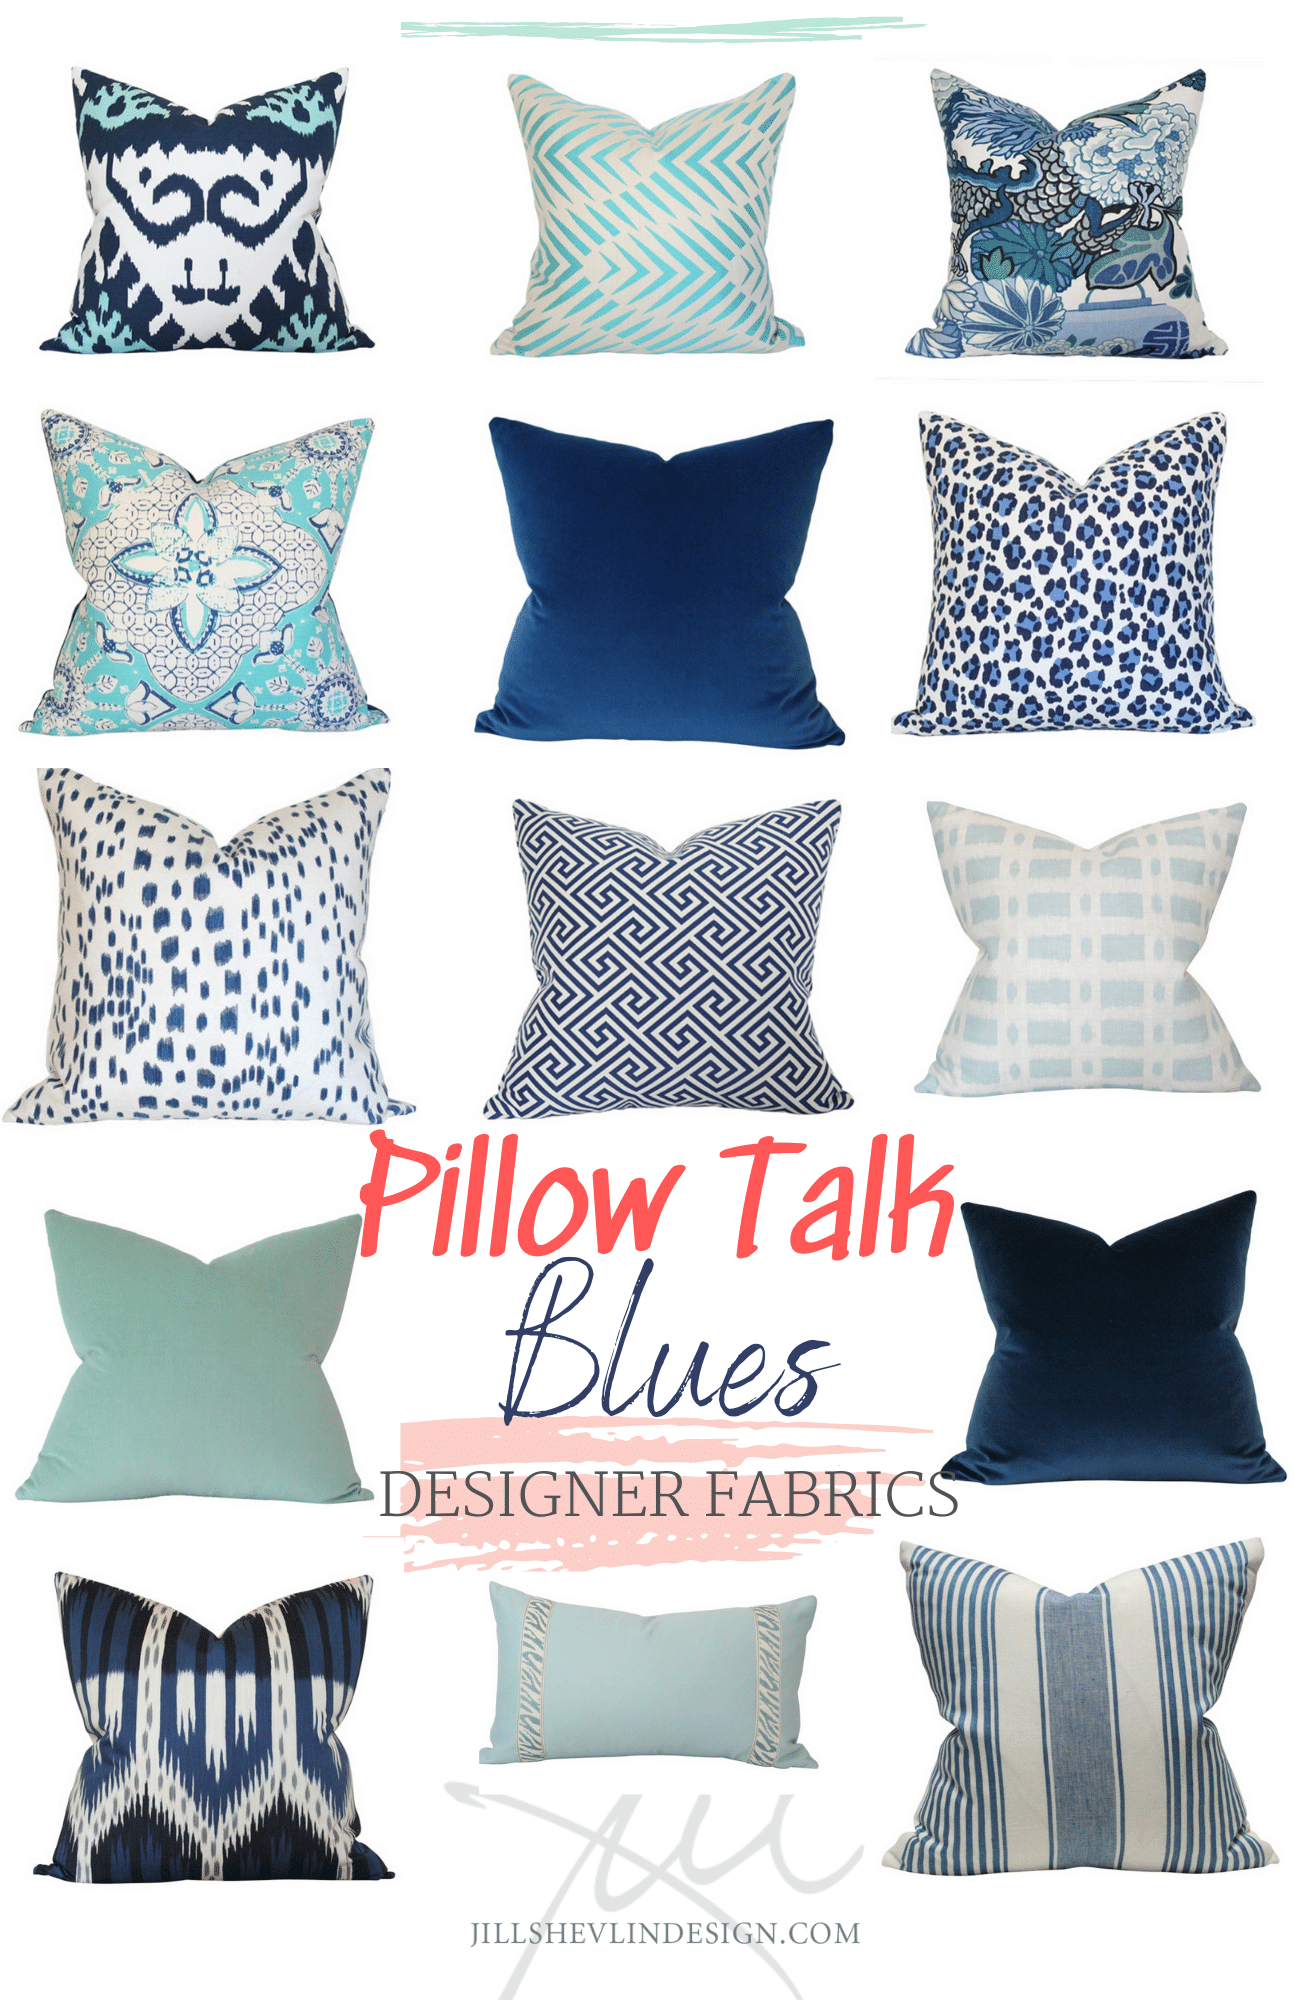 Pillow Talk Blue Desiger Pillows Curated by  Jill Shevln Design Vero Beach Interior Designer Shop Online